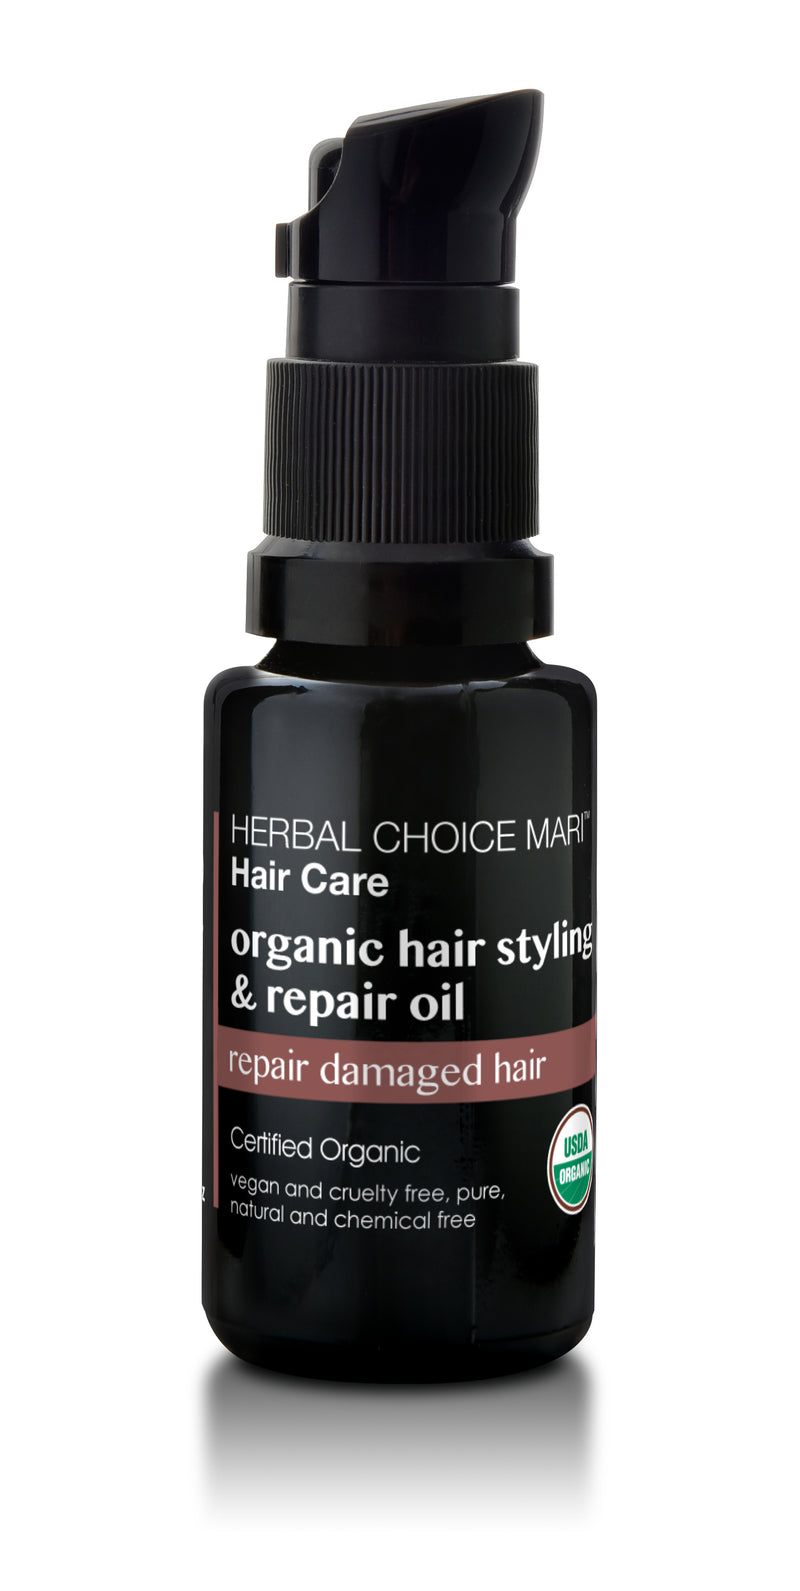 Herbal Choice Mari Organic Hair Styling & Repair Oil - Herbal Choice Mari Organic Hair Styling & Repair Oil - Herbal Choice Mari Organic Hair Styling & Repair Oil